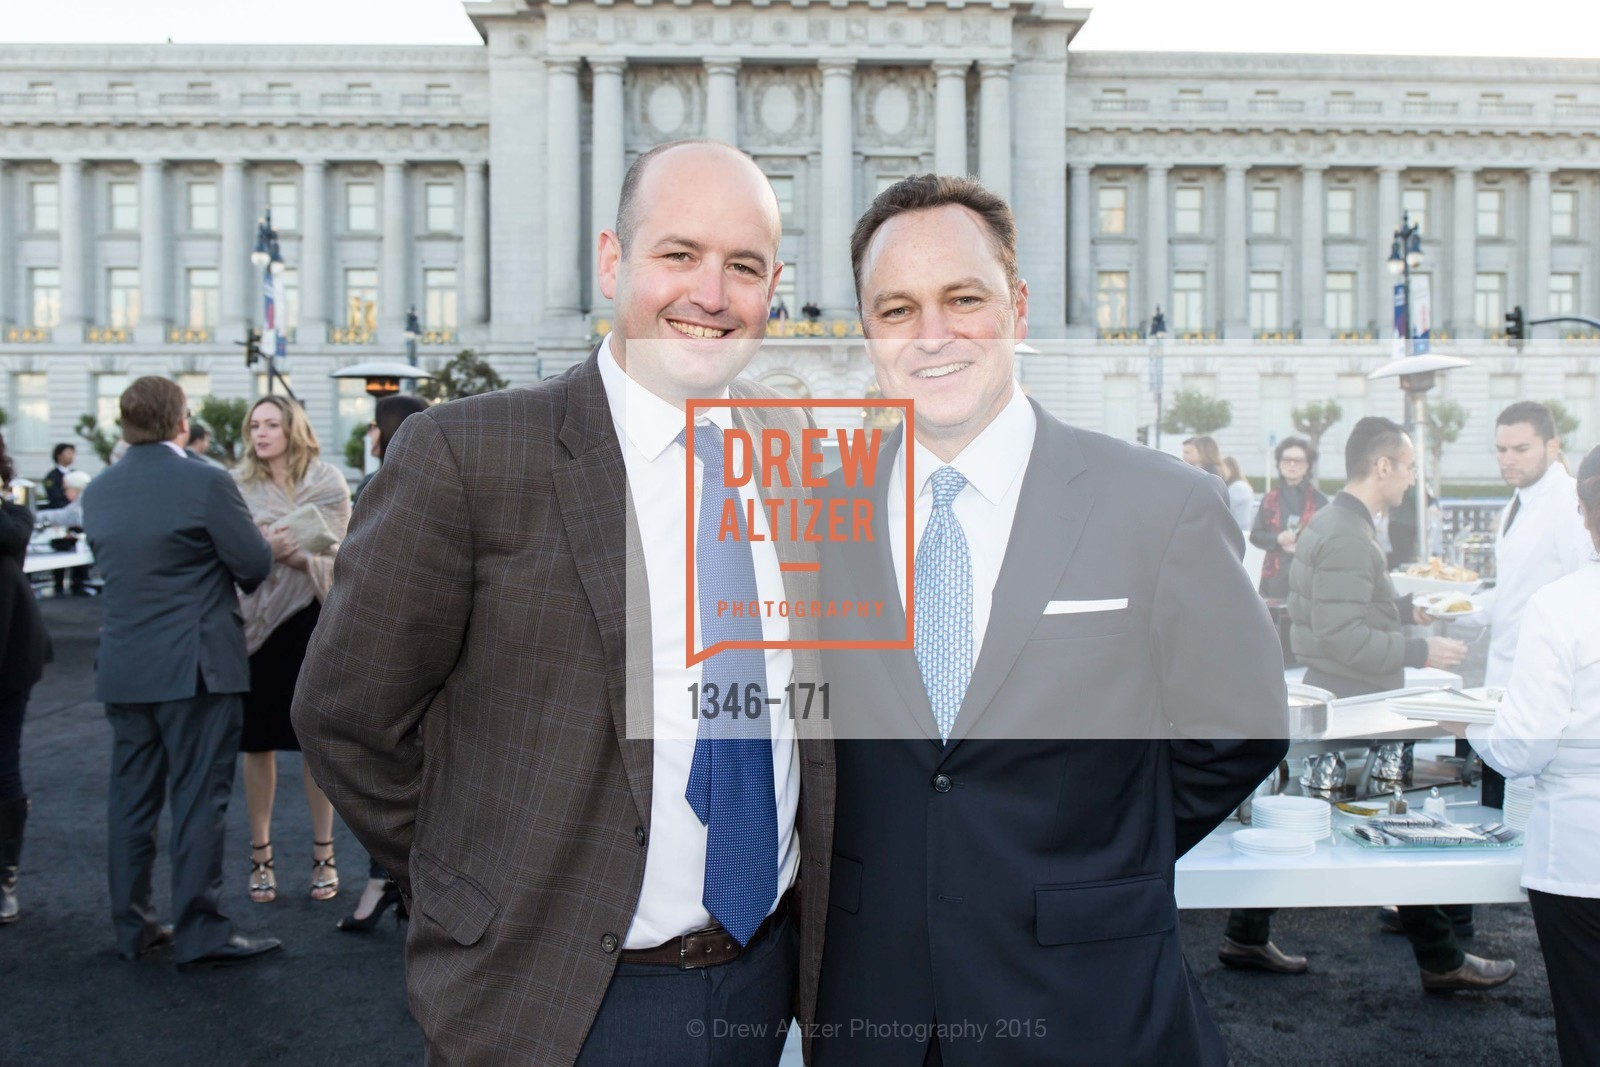 Boe Hayward, Rich Peterson, San Francisco City Hall Centennial Celebration, Civic Center Plaza, June 18th, 2015,Drew Altizer, Drew Altizer Photography, full-service agency, private events, San Francisco photographer, photographer california